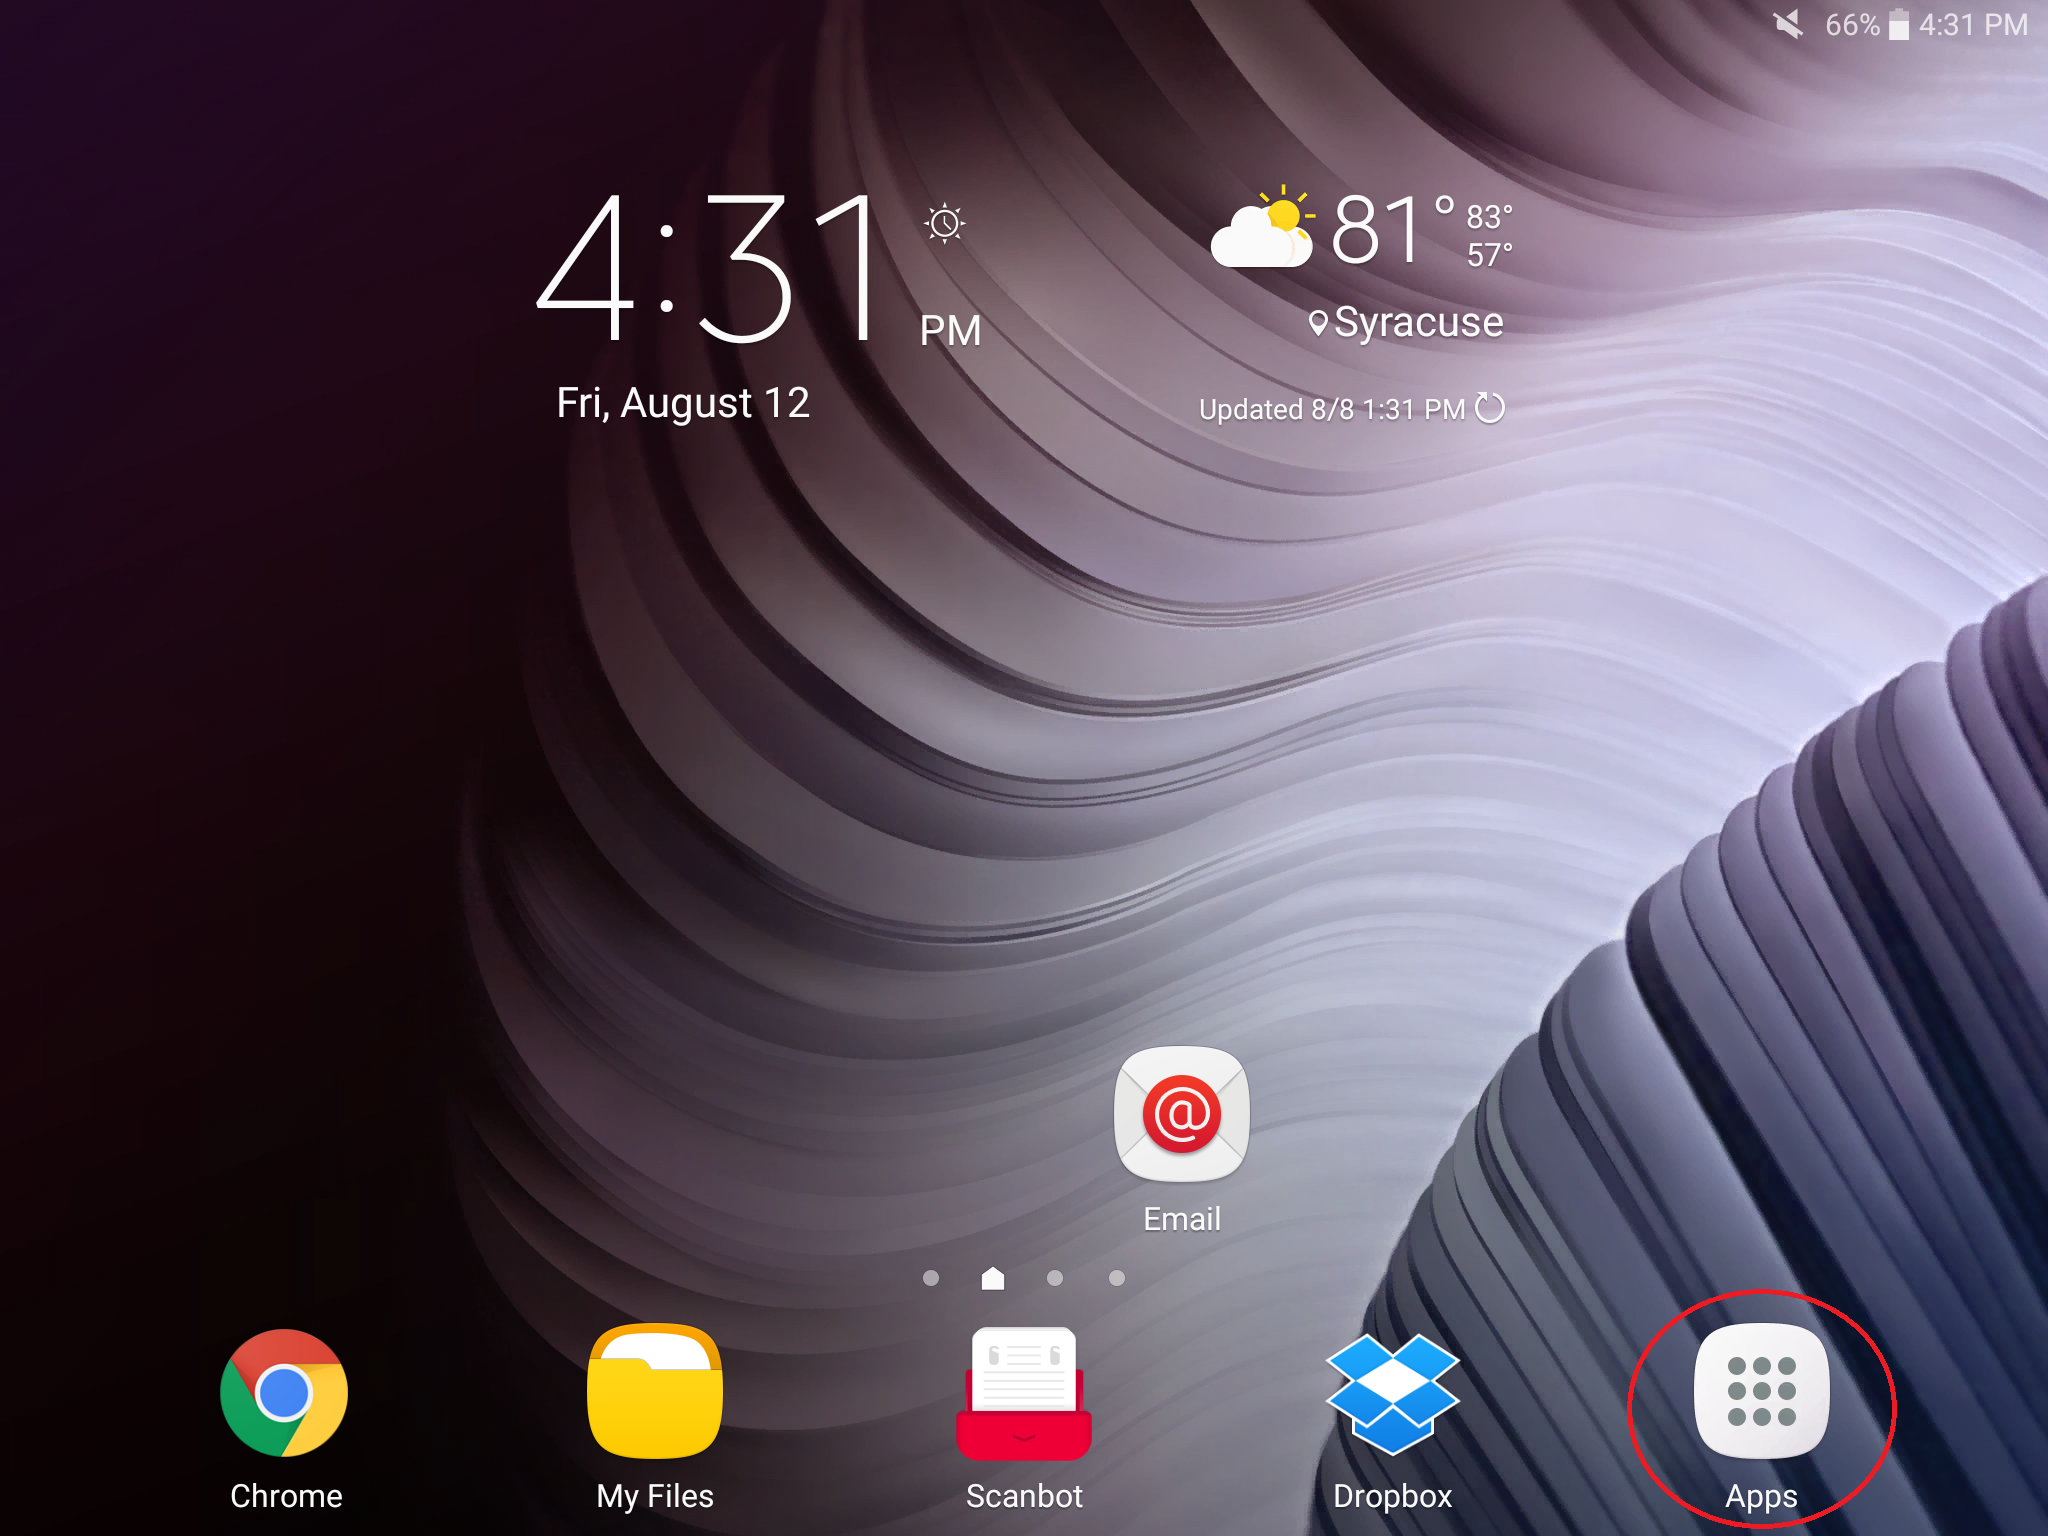 Image Android 6.0 Marshmallow home screen